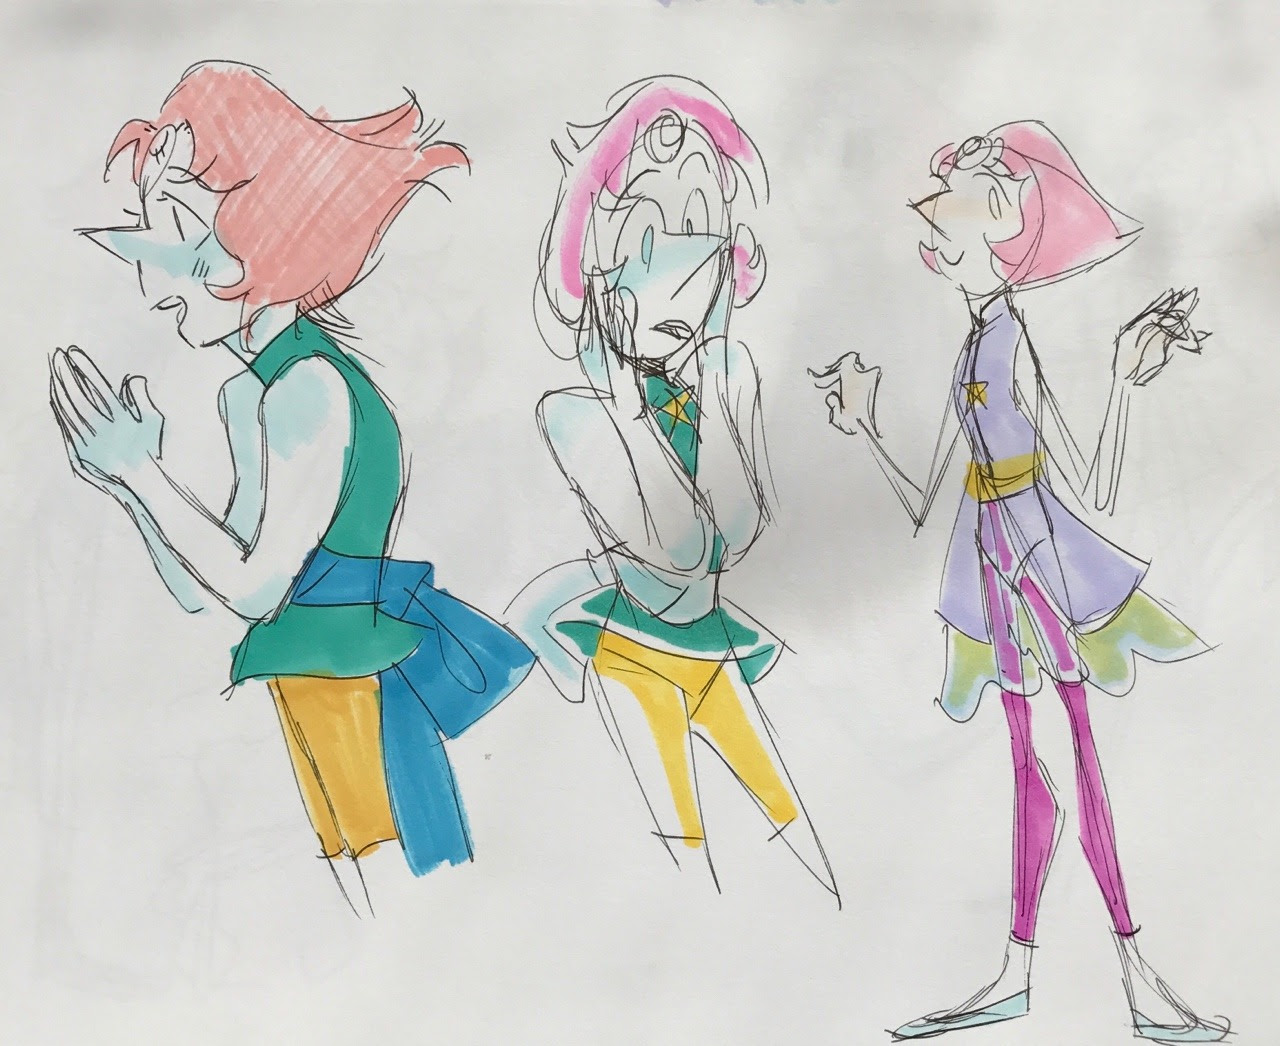 Pearls featuring different outfit ideas